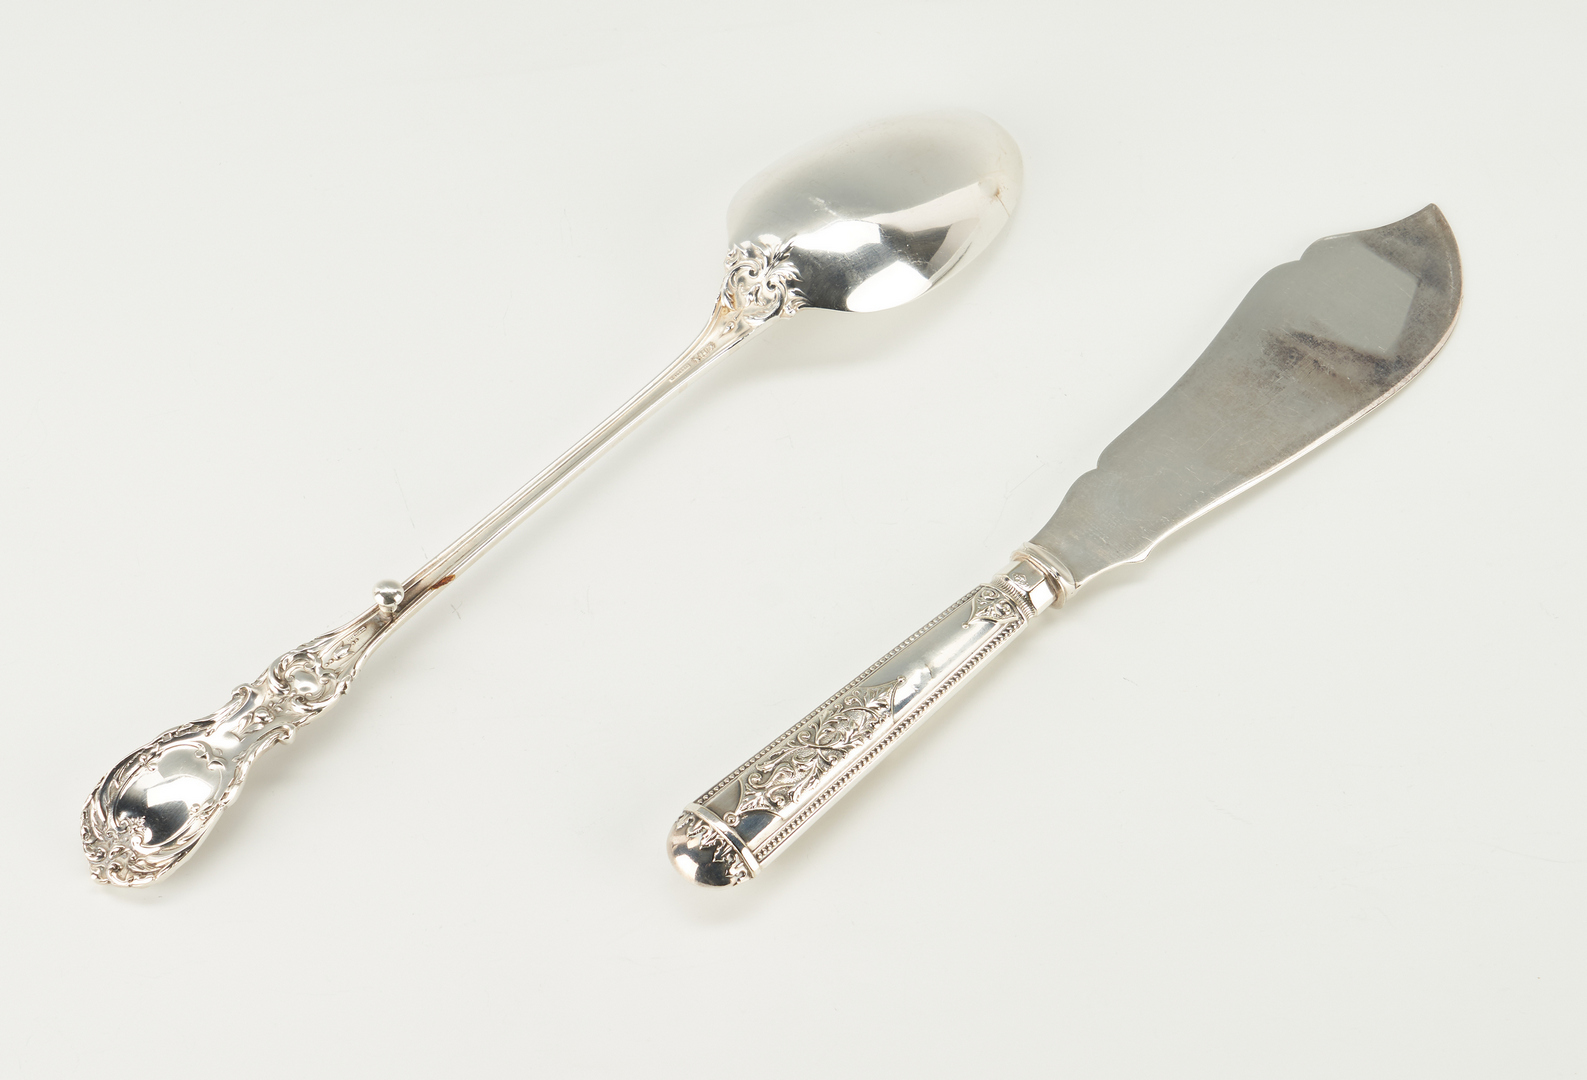 Lot 808: Sterling Flatware, Candlesticks, Napkin Ring and more